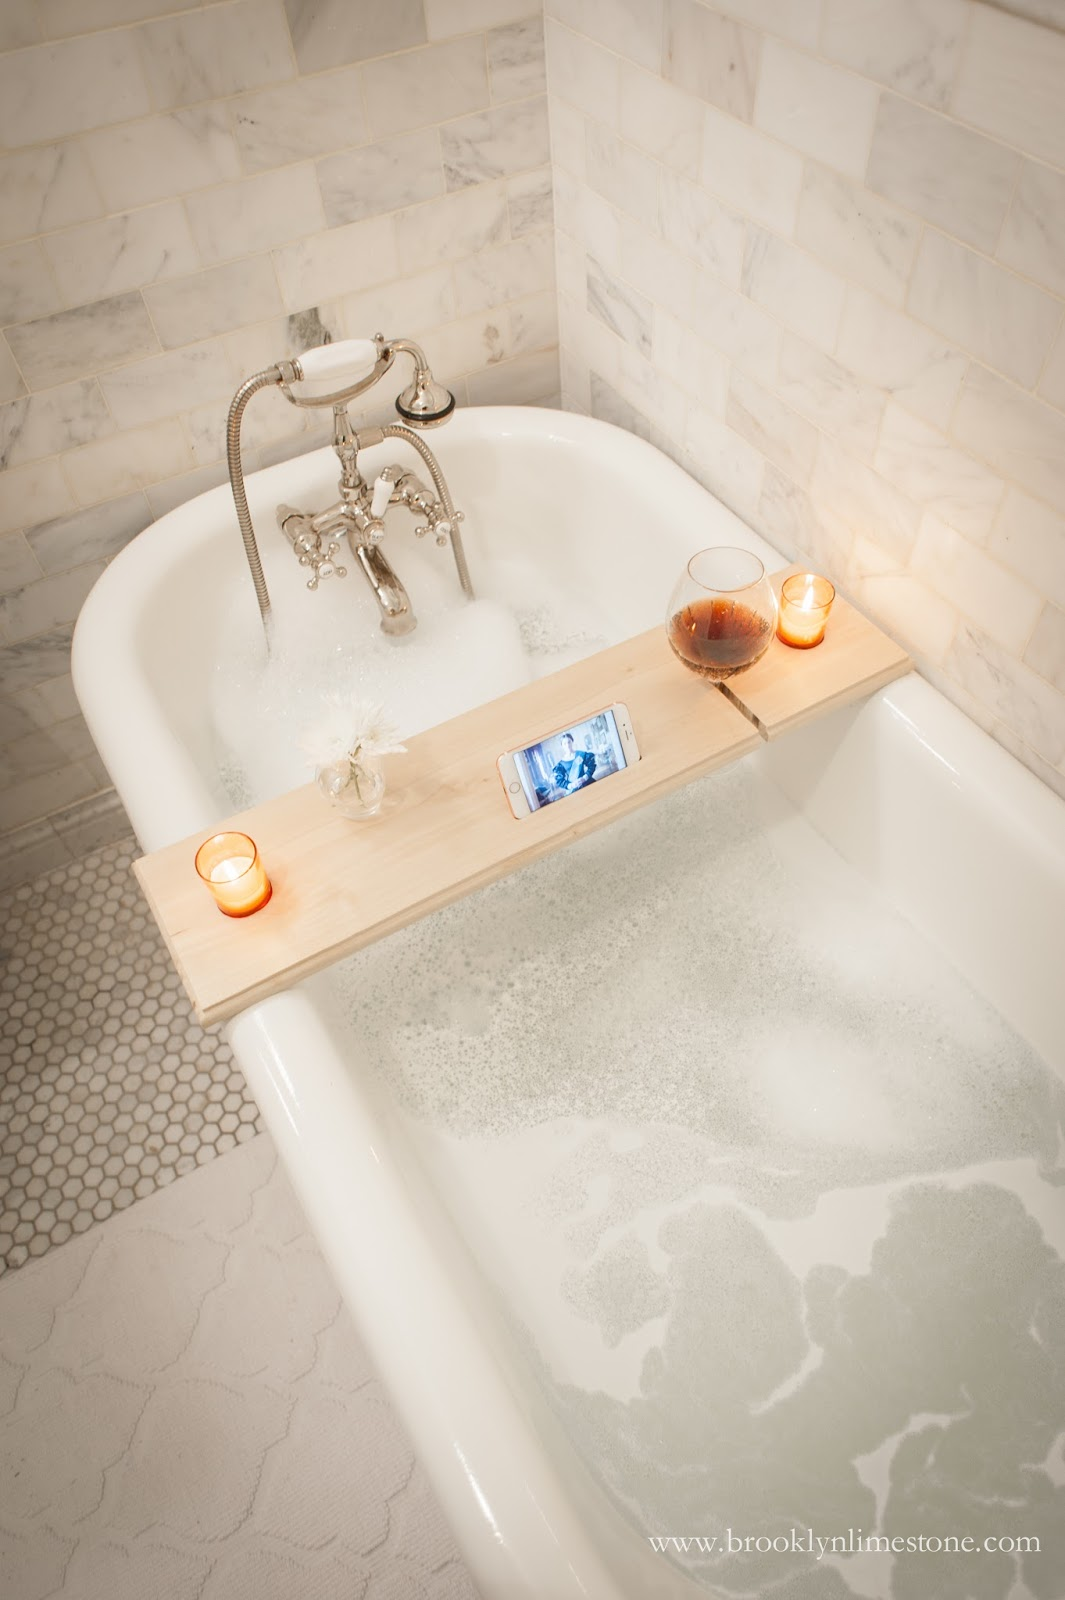 DIY NETFLIX + CHILL BATH CADDY | Brooklyn Limestone